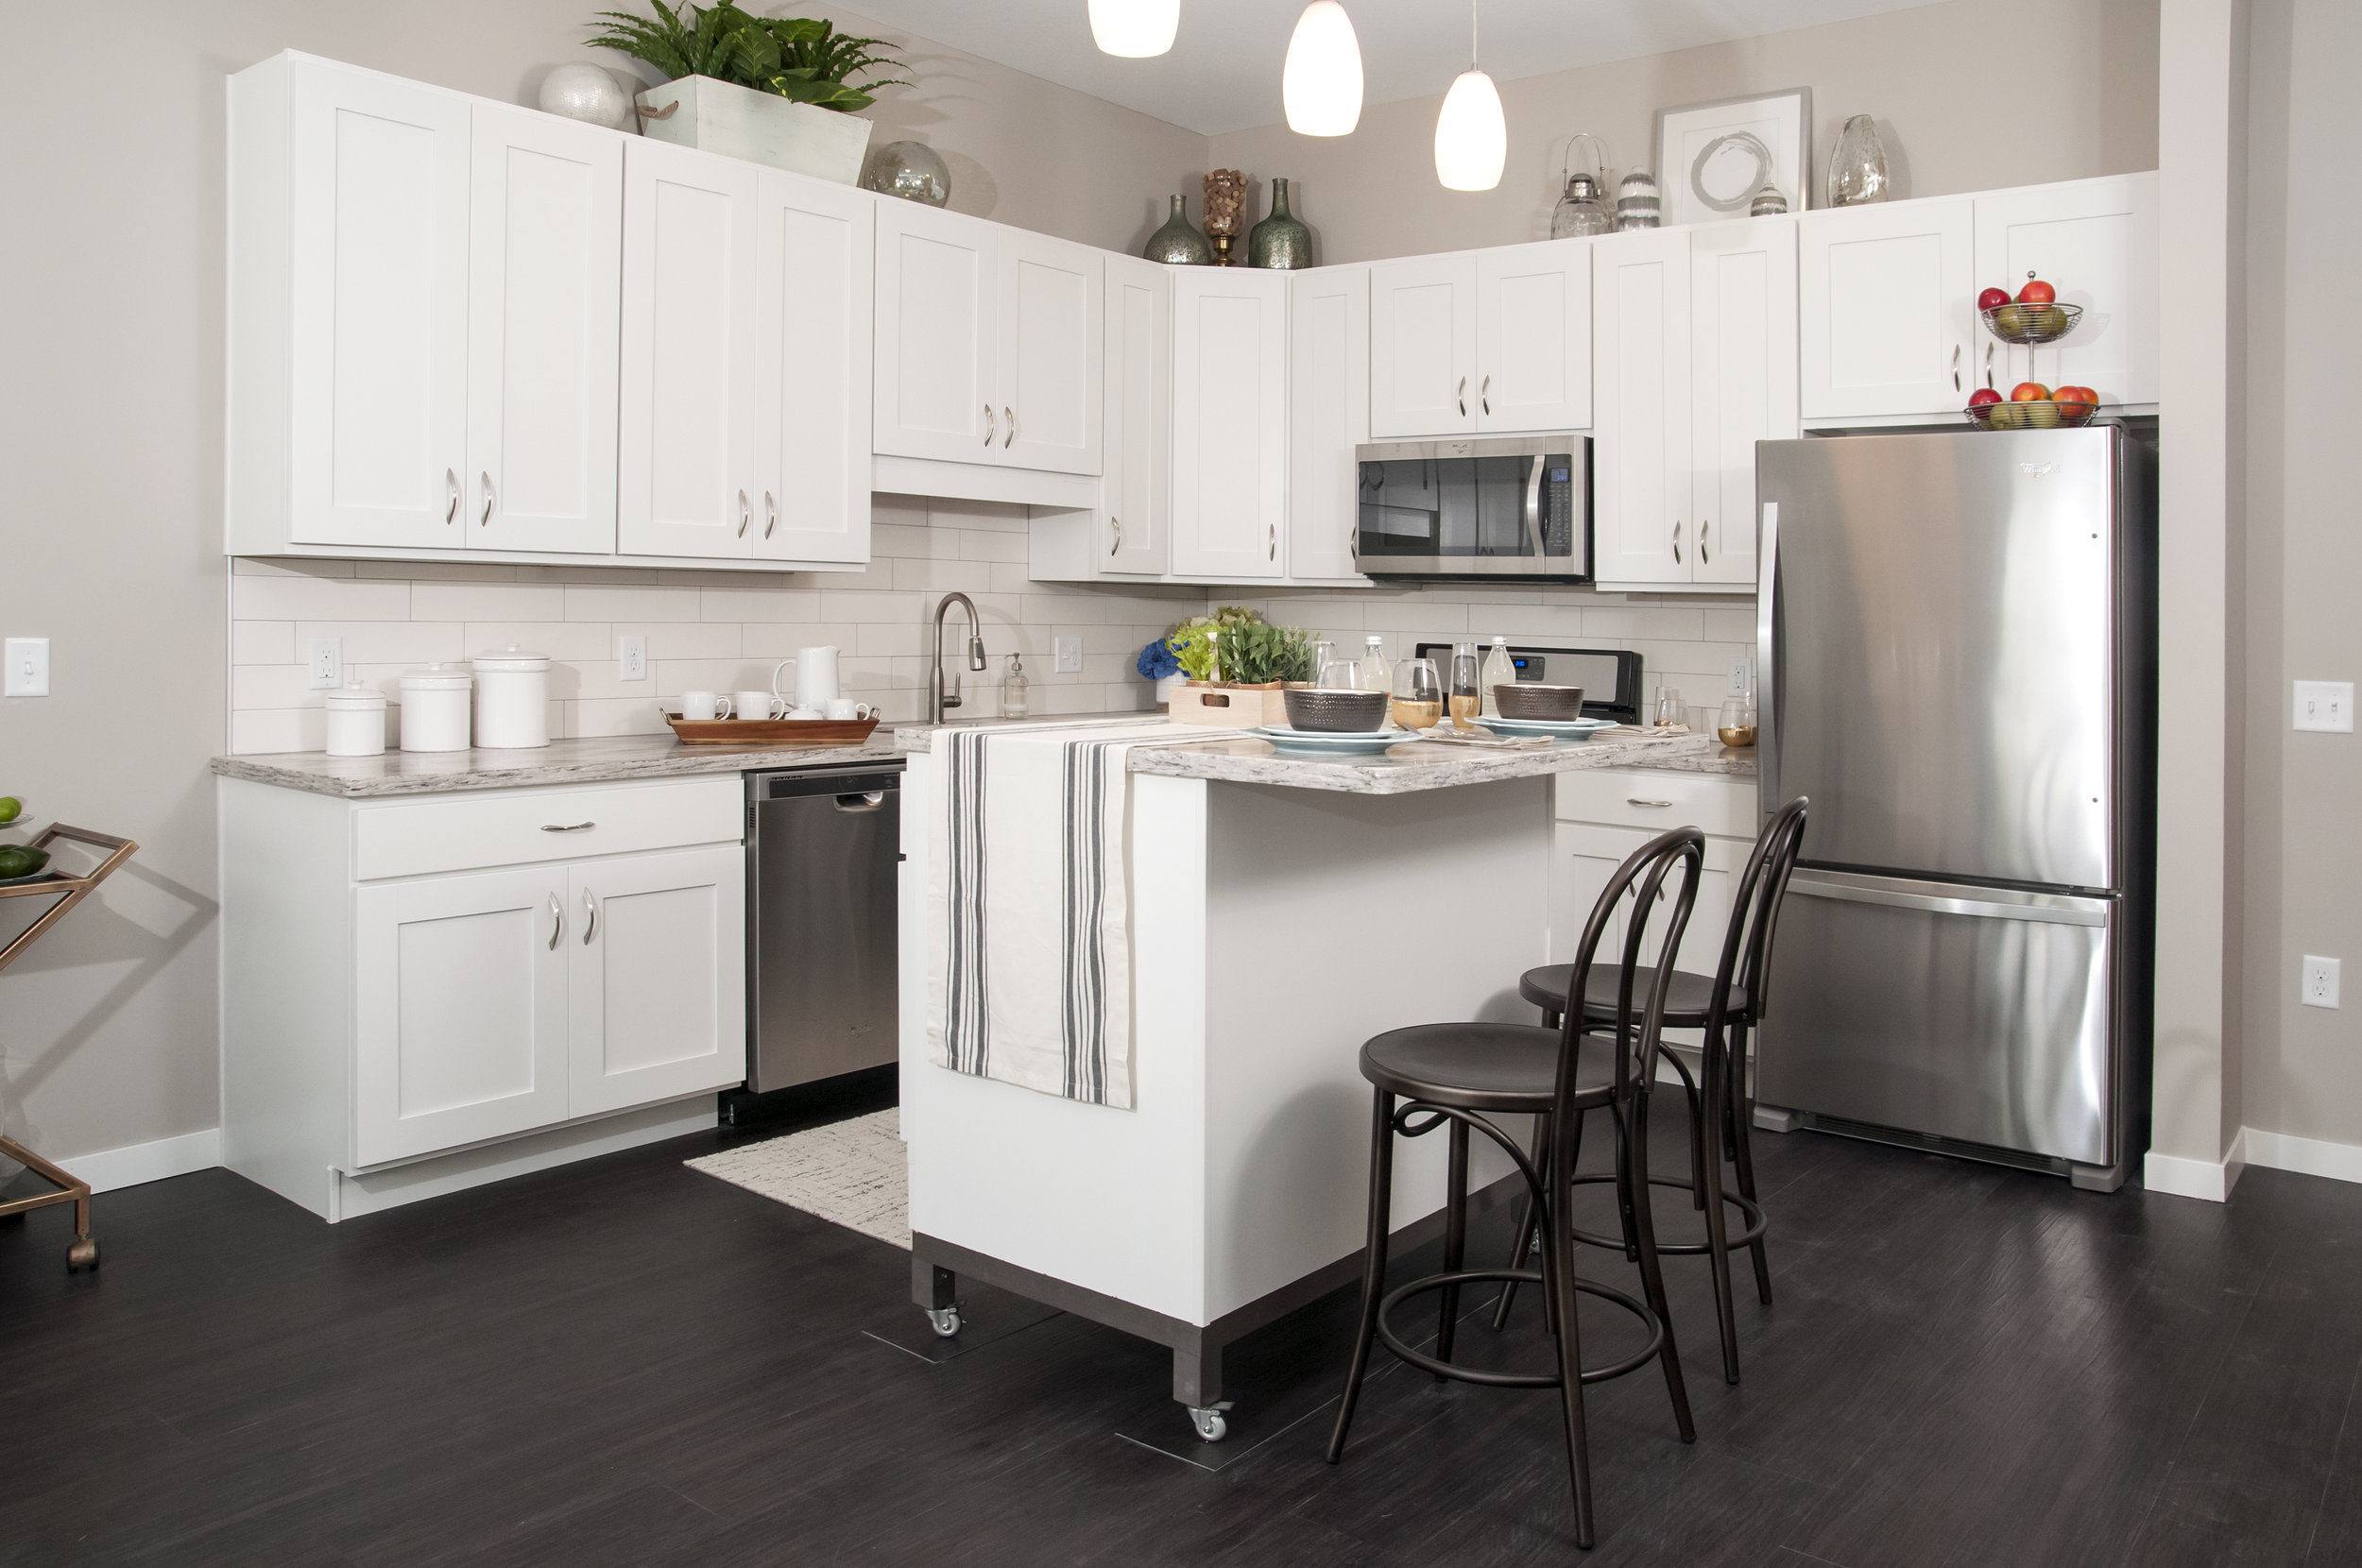 03-Some Units Feature White Kitchen Cabinetry.jpg